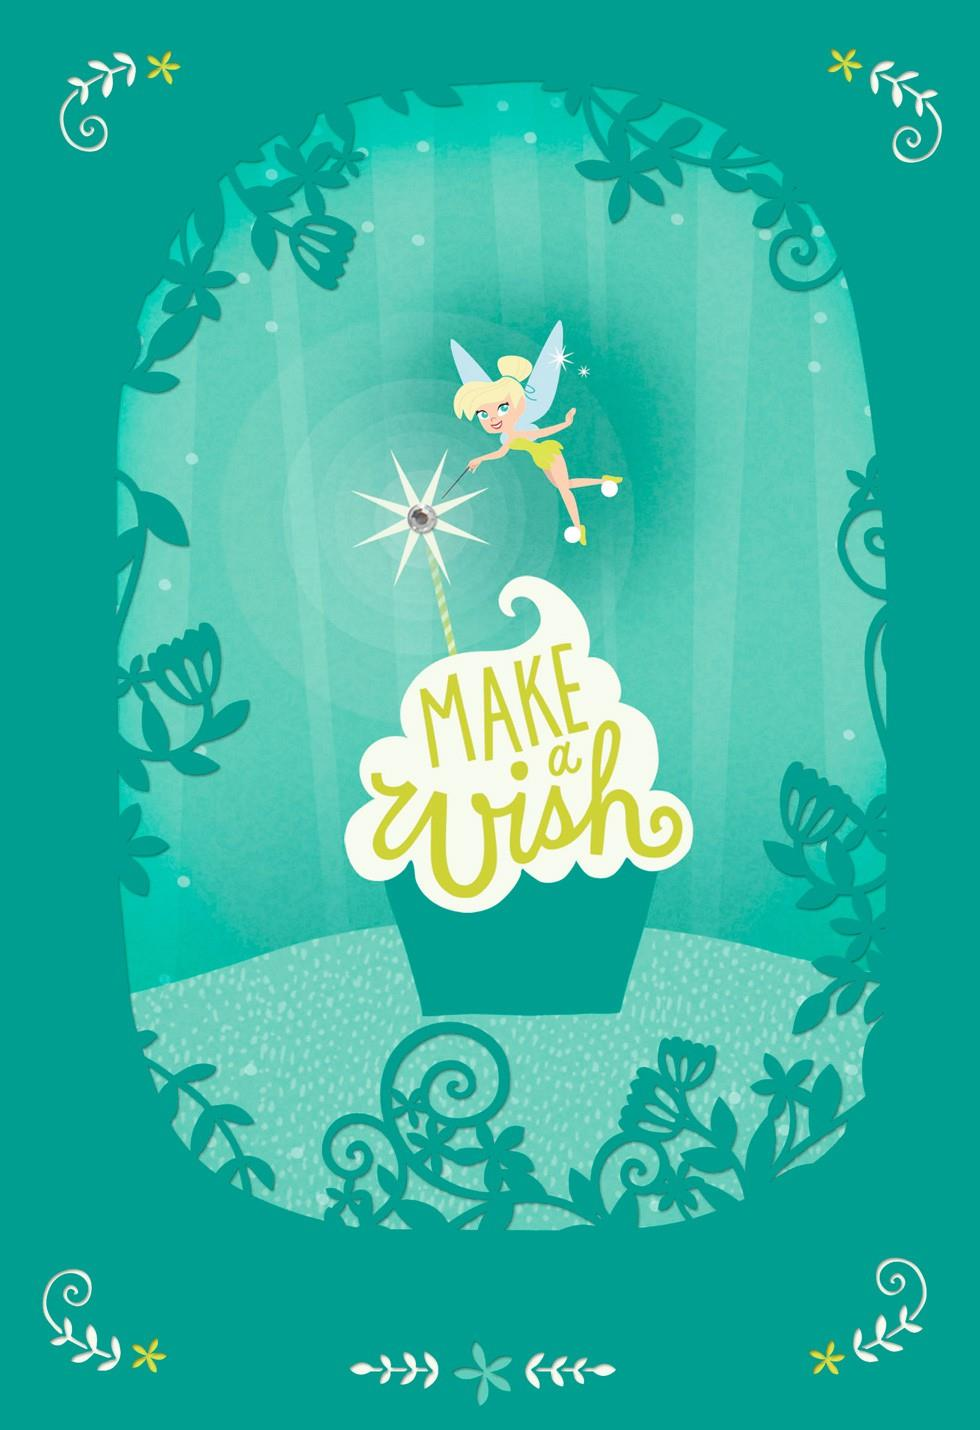 make a birthday wish picture ; make-a-wish-daughter-tinker-bell-birthday-card-root-599fbd1152_1470_1